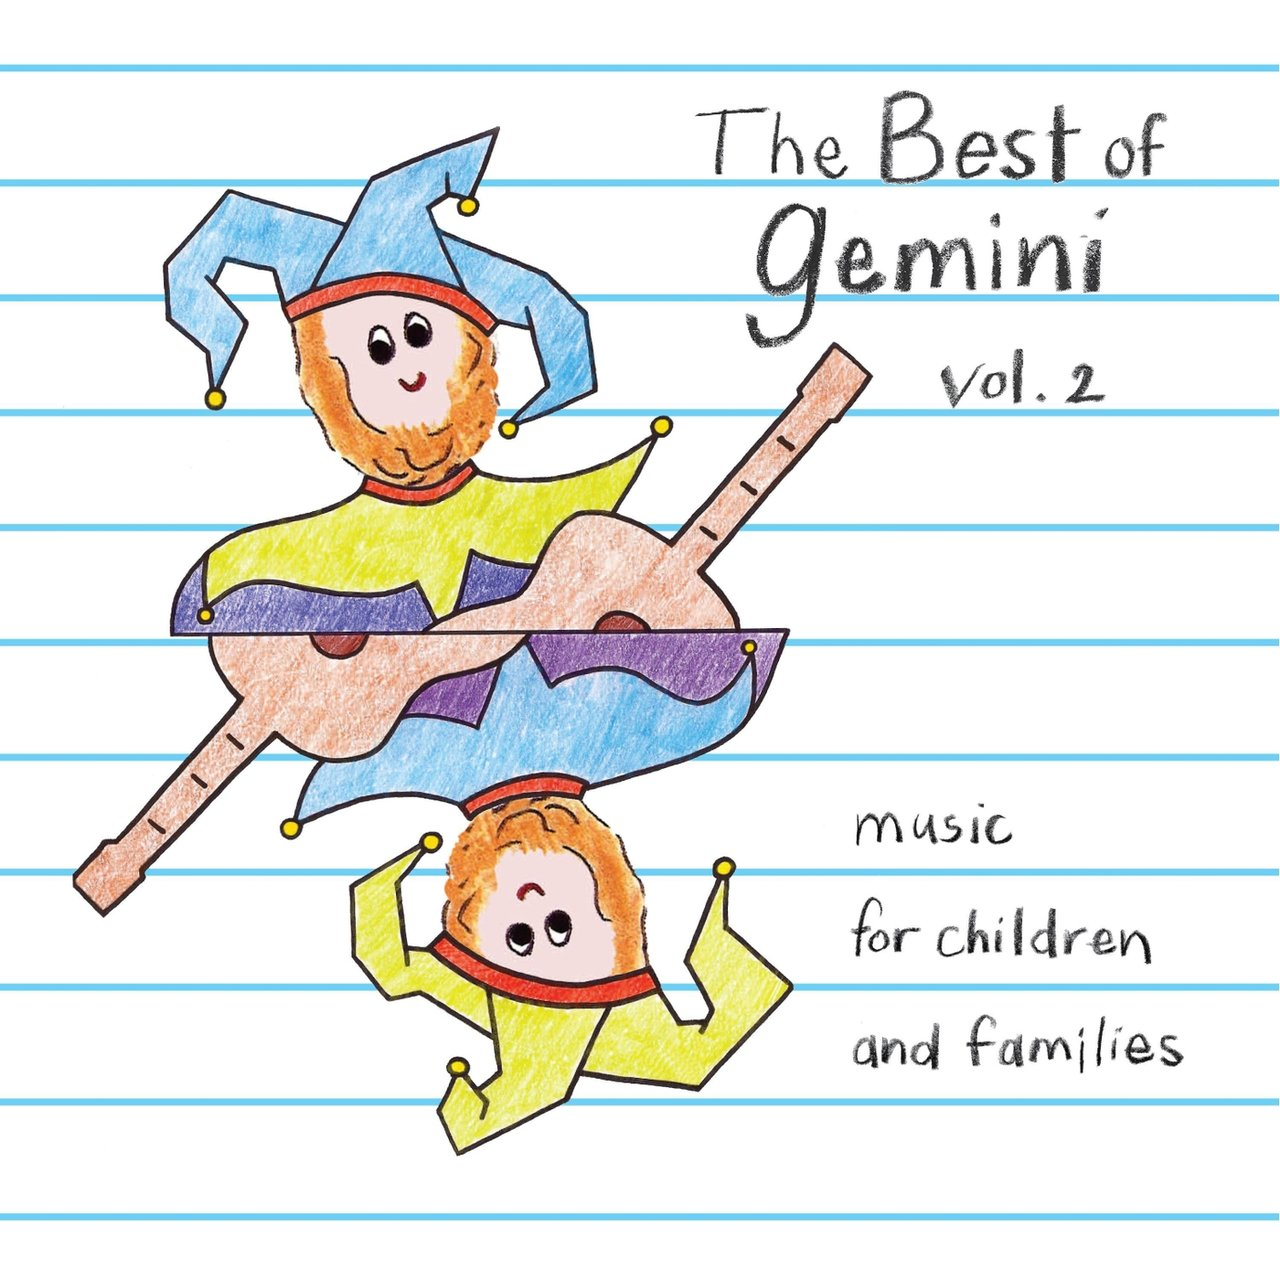 The Best of Gemini, Vol. 2